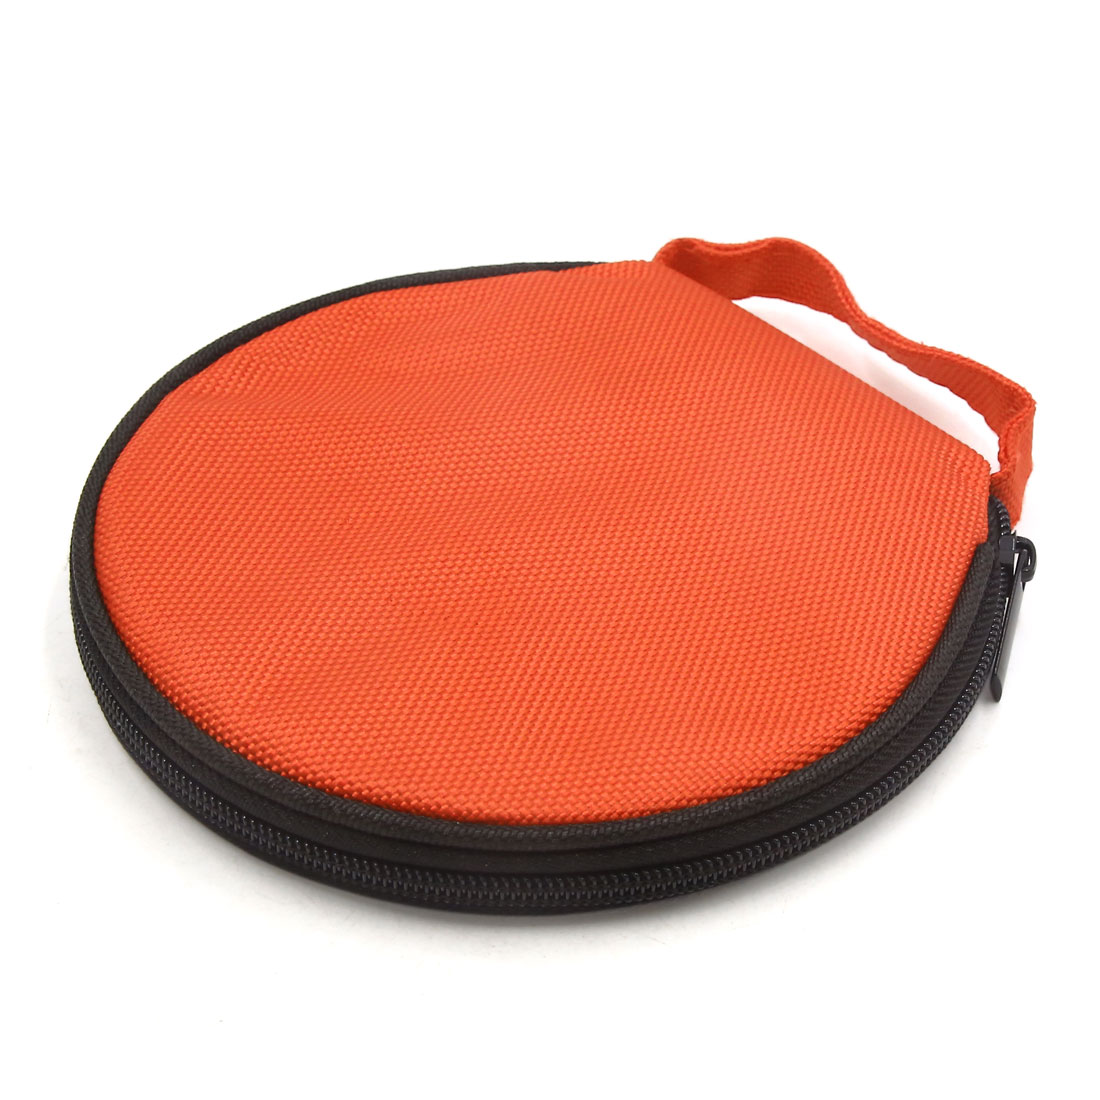 Orange Zipper Closure Round CD Disc Holder Bag Storage Carry Case Wallet for Car - image 3 de 3